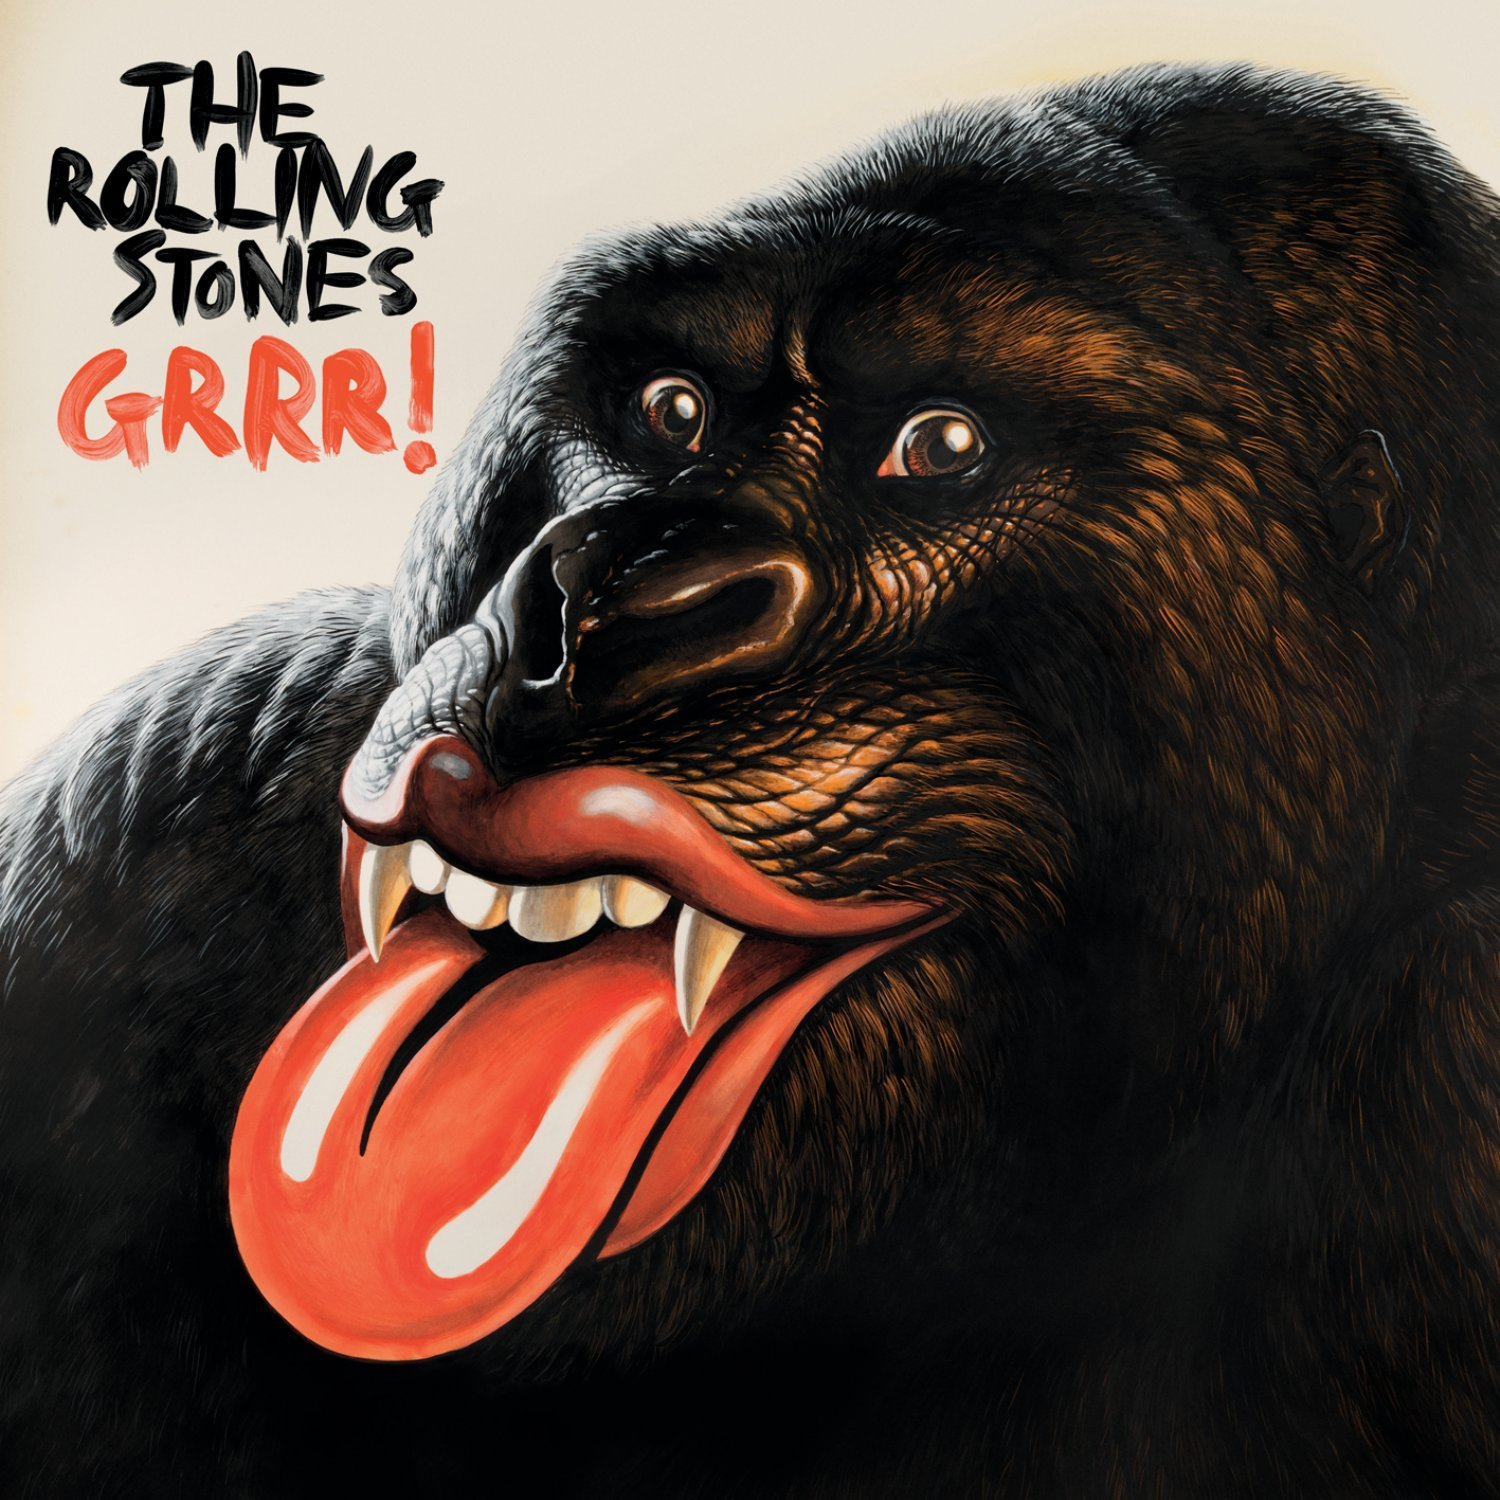 Every Rolling Stones Album Cover, Ranked | City Pages